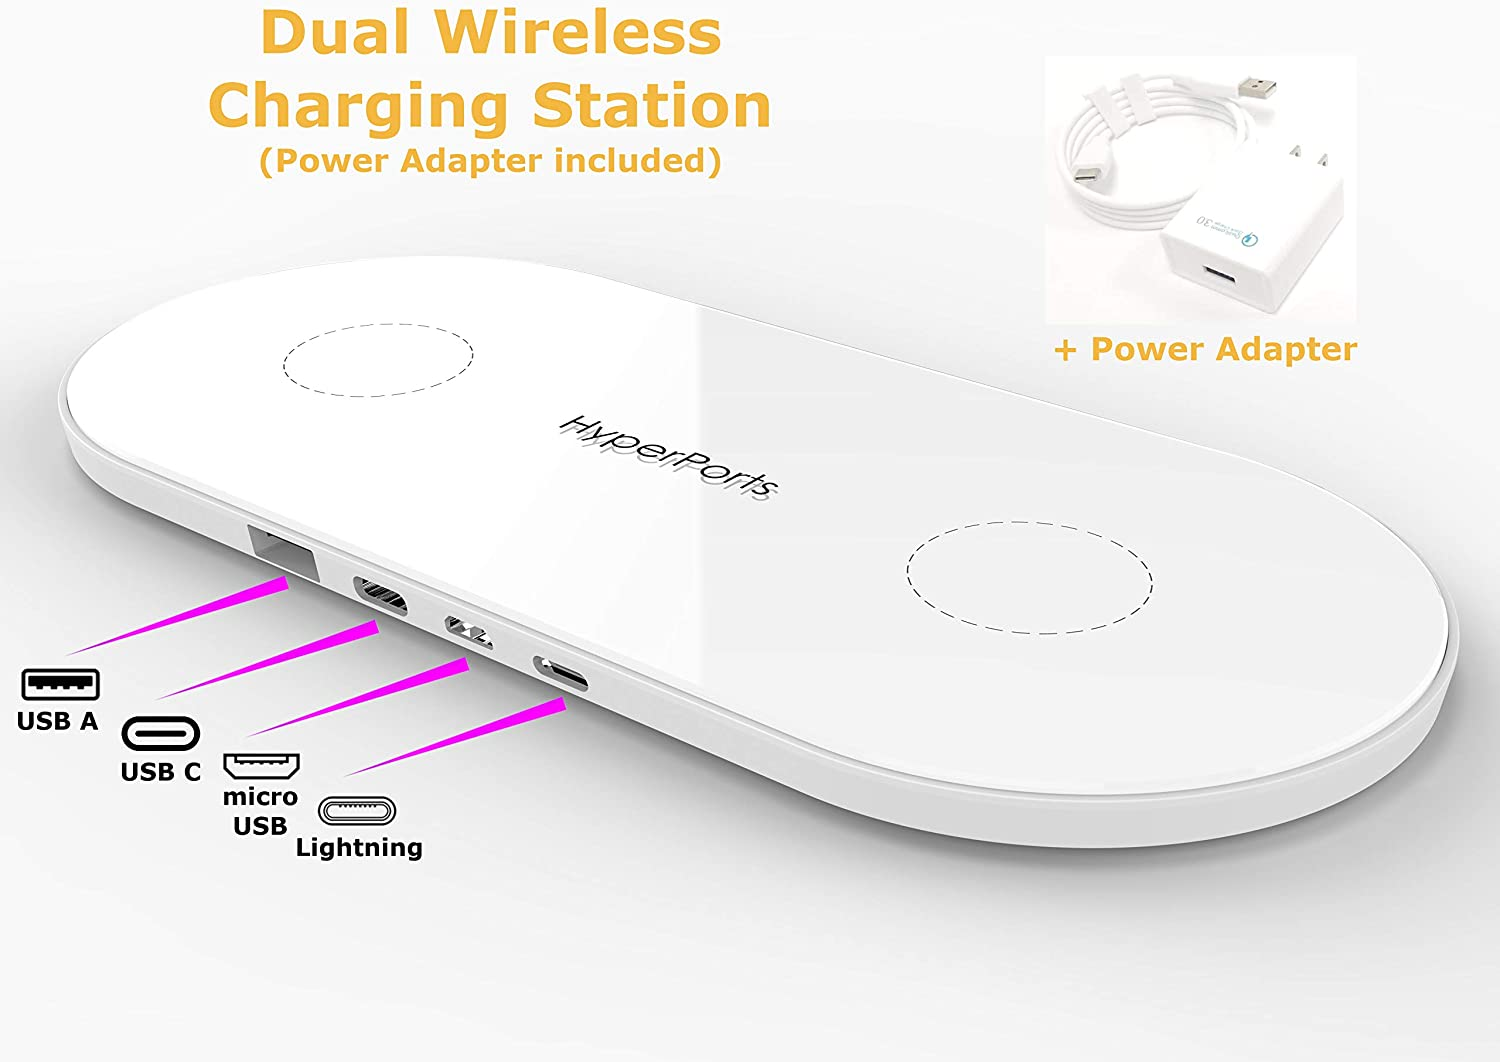 Hyperports Dual Wireless Charger for iPhone X + USB C, Micro USB & Apple Charging Compatible w/iPhone XR/XS MAX 8/8 plus/9/9 Plus, Samsung Galaxy Note 8, S8/S8 Plus, S7/S7 Edge, S6 Edge Plus/Note 5 +